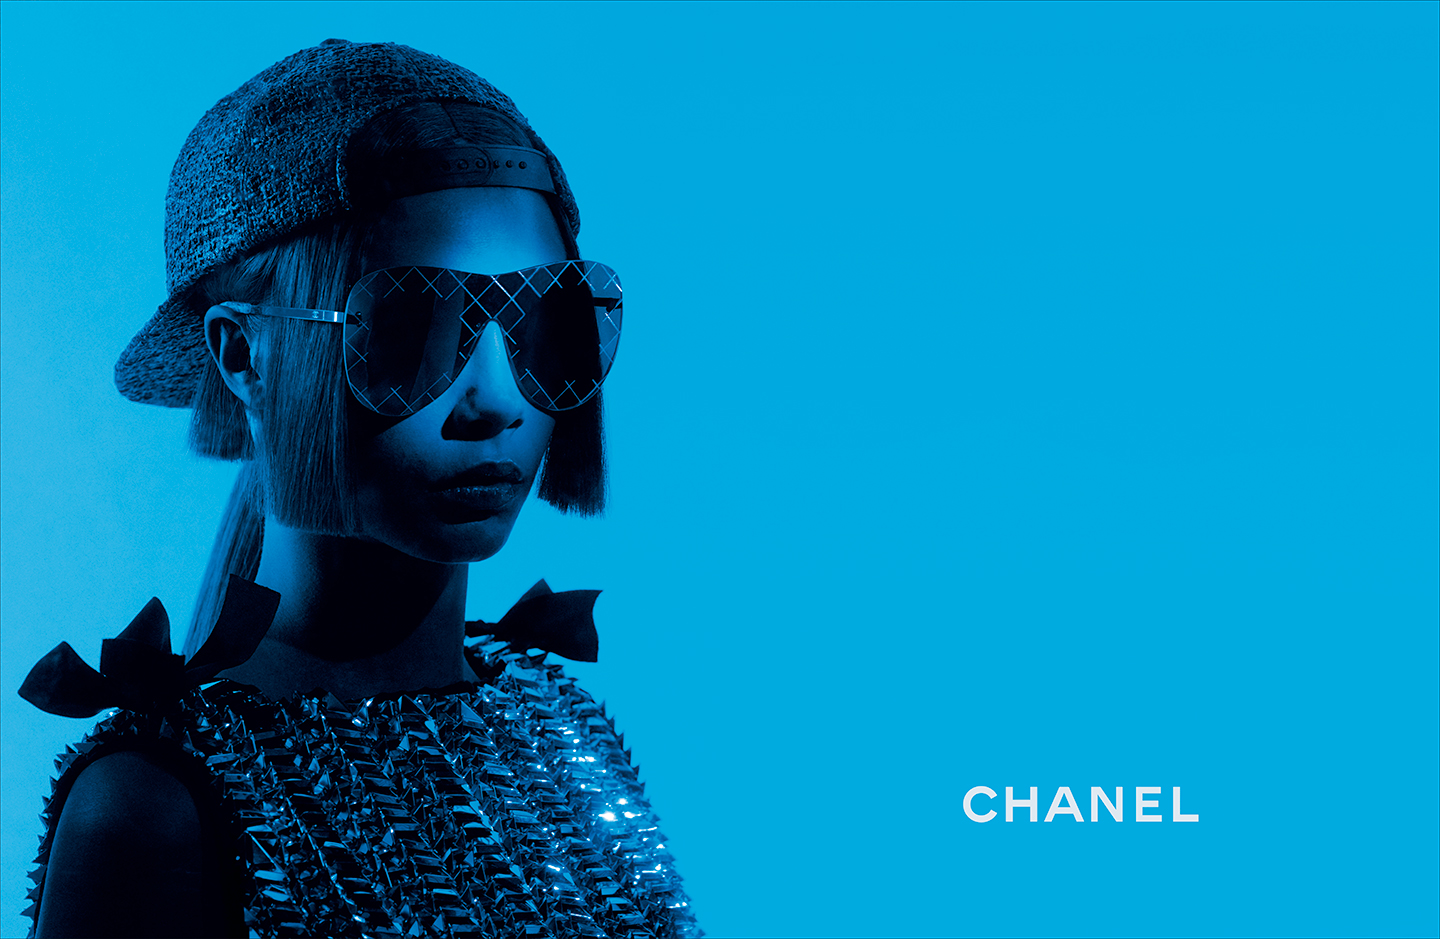 Cara Delevingne for Chanel Eyewear Spring/Summer 2016